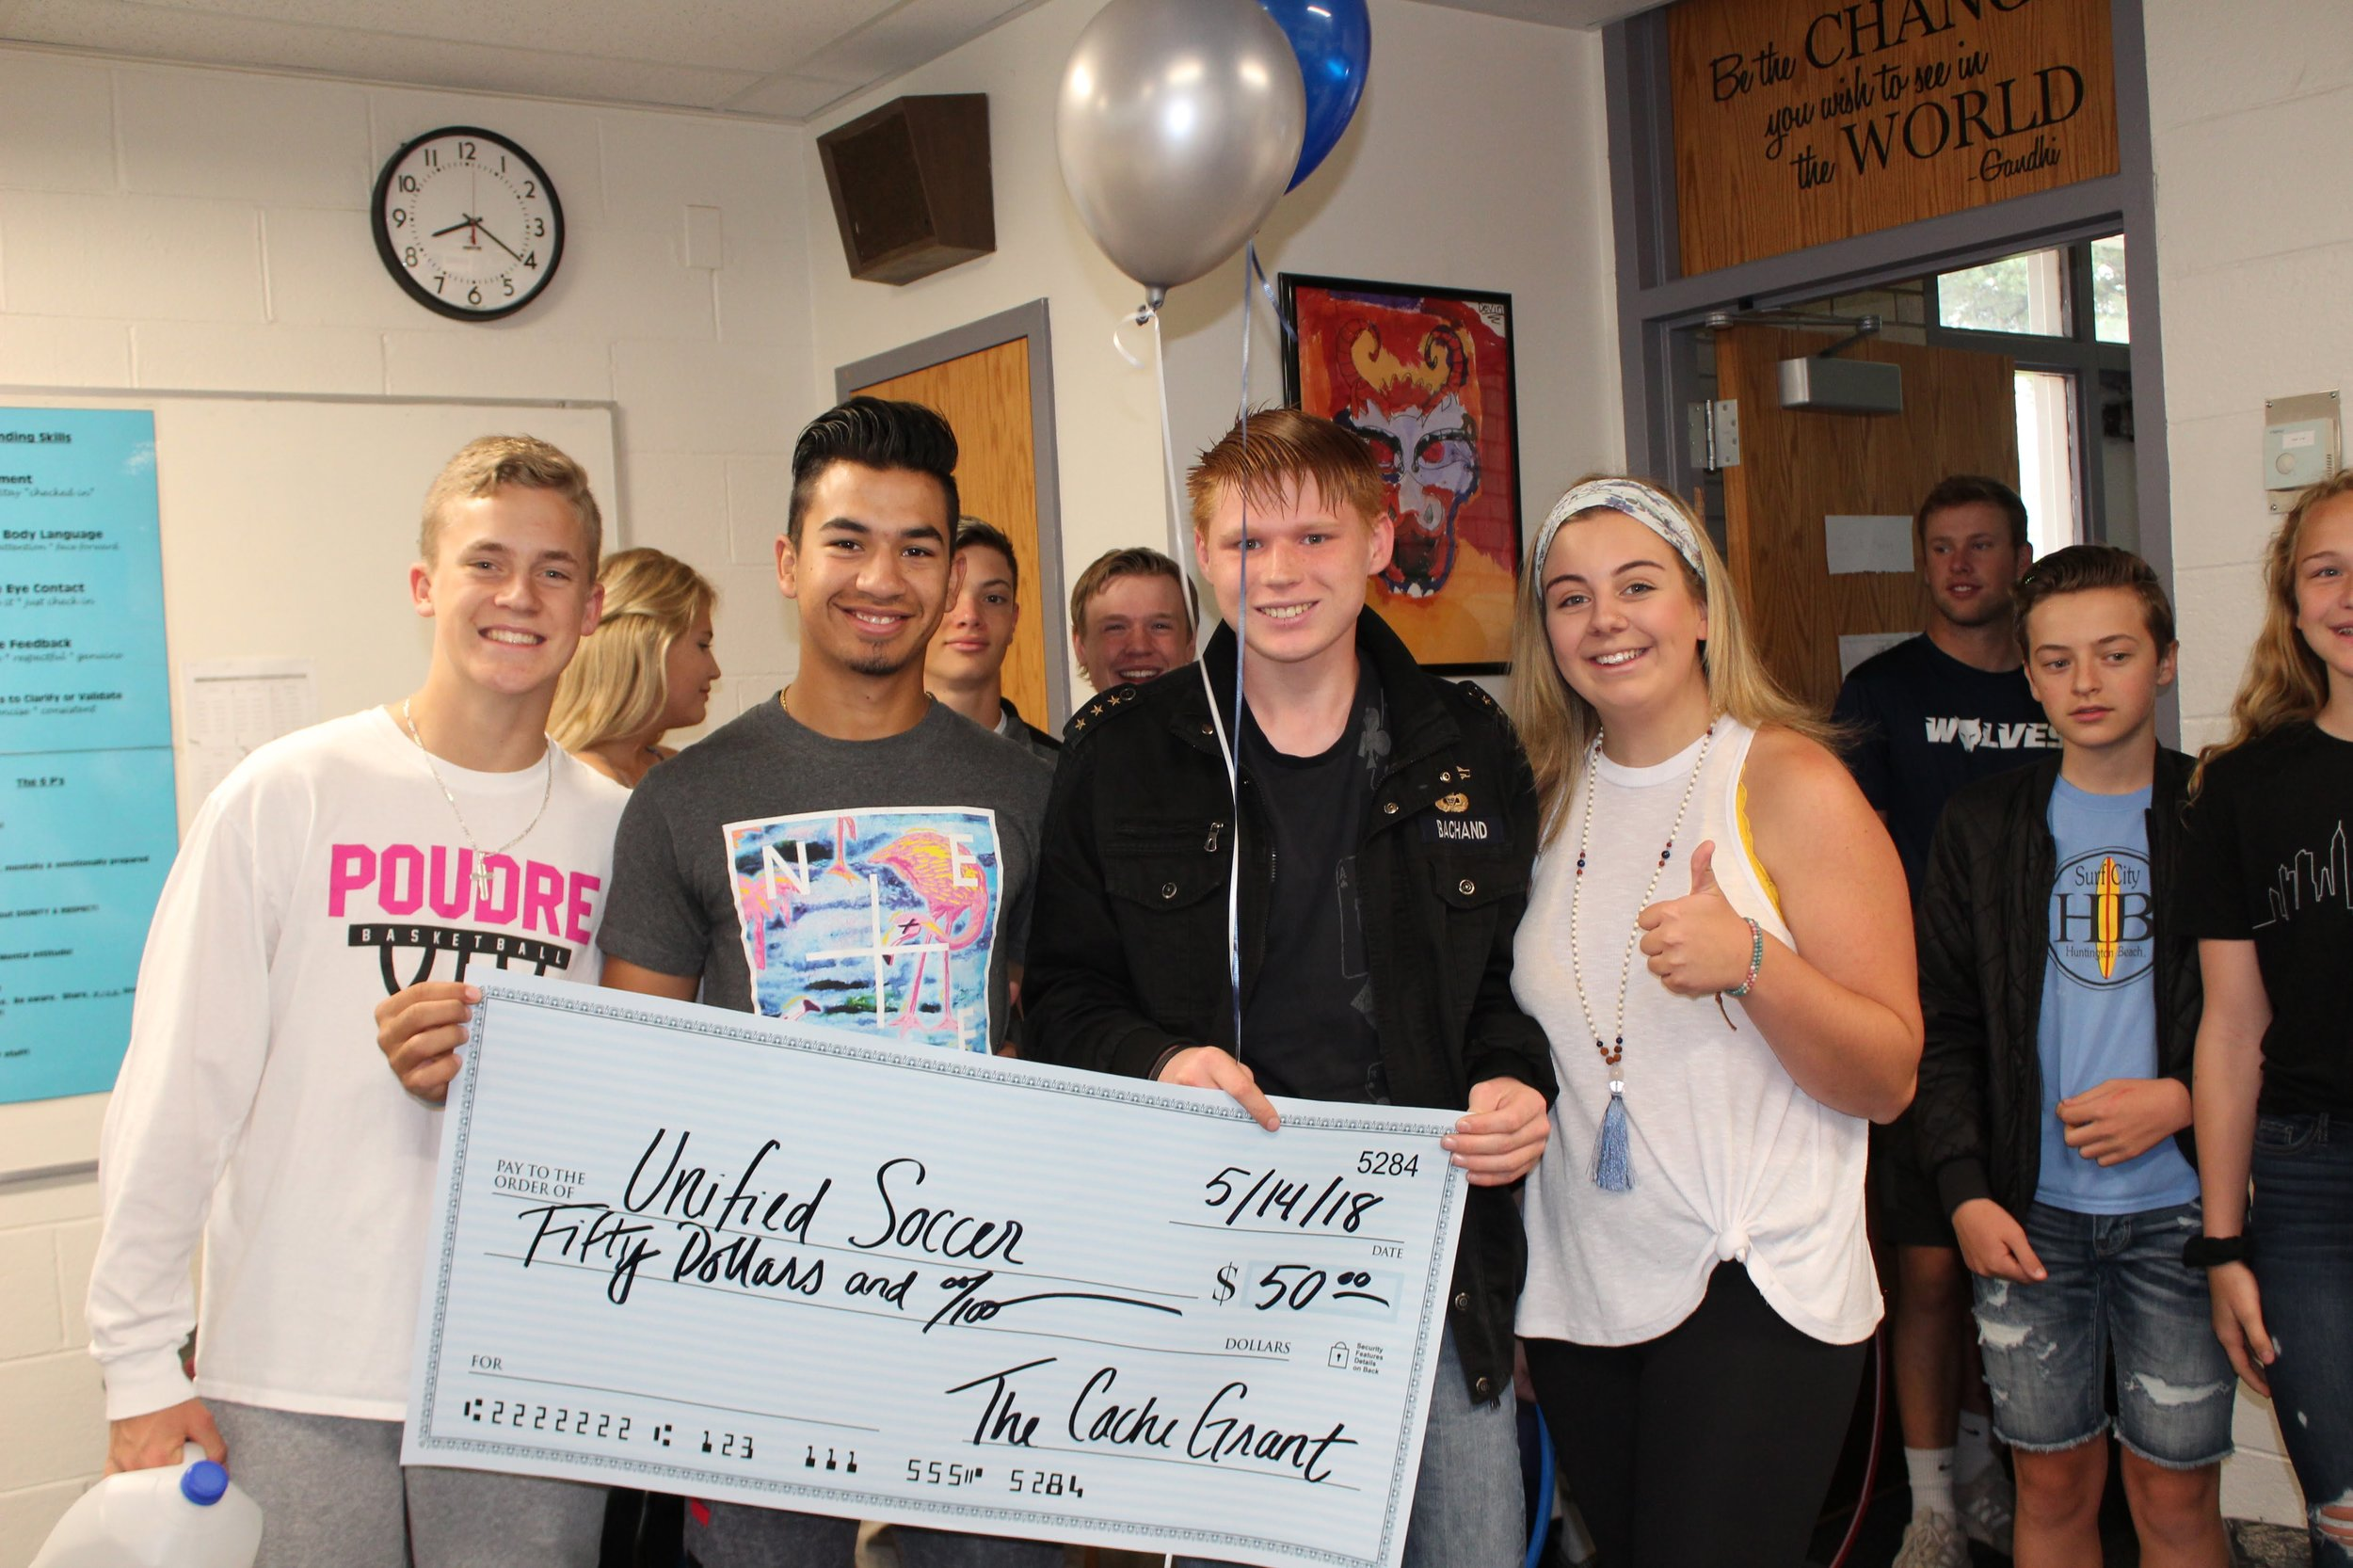 Unified Soccer - Andre, Unified Soccer player, was awarded funds to help cover the cost of athletic fees and to help with the purchase of a new soccer ball.